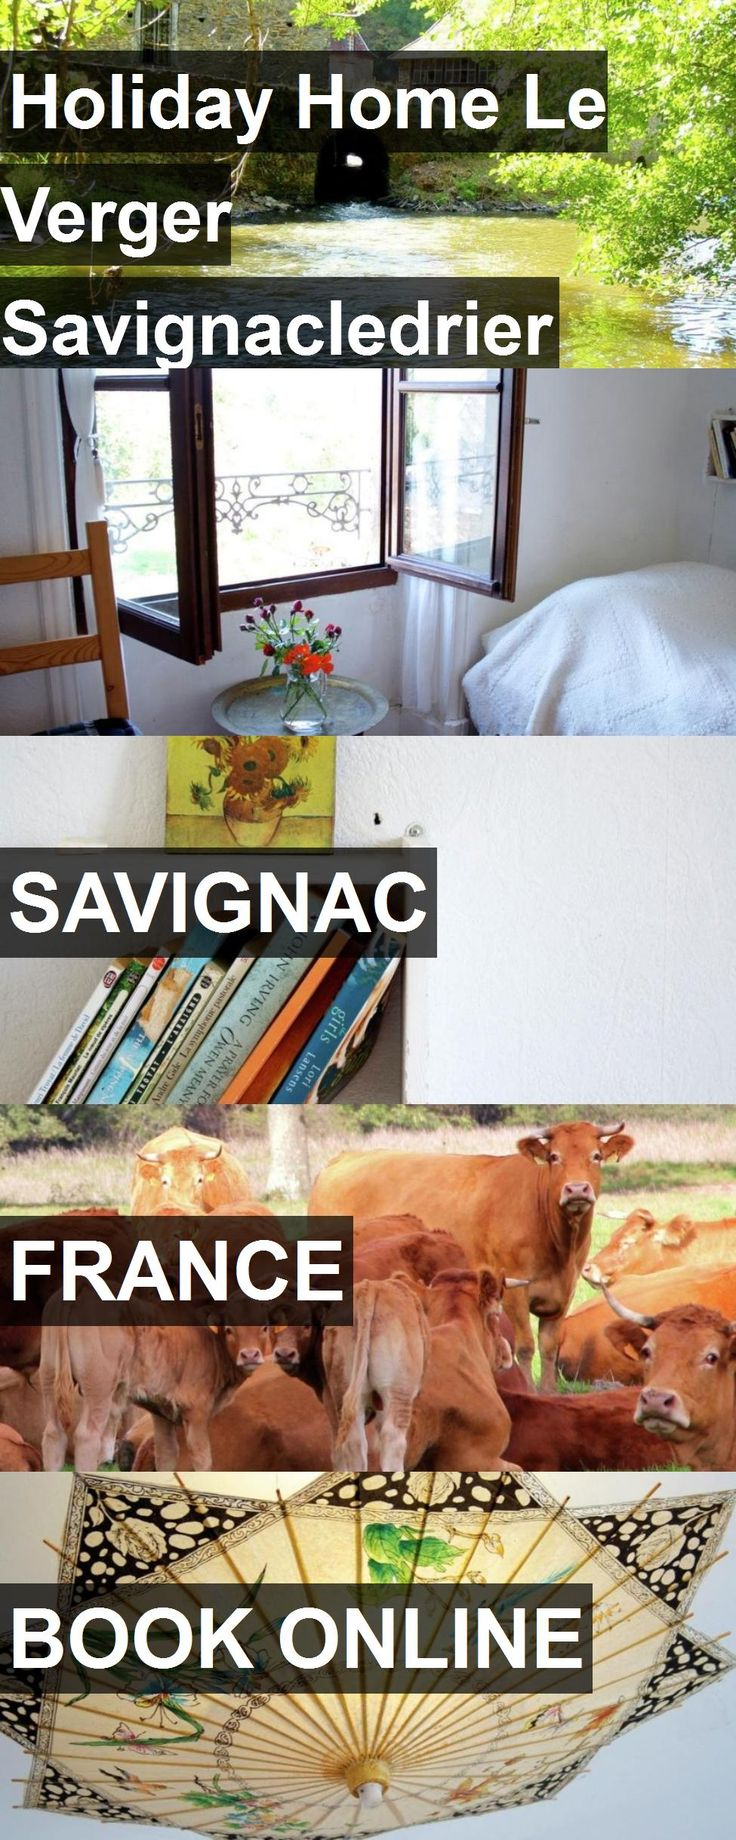 Hotel Holiday Home Le Verger Savignacledrier in Savignac, France. For more information, photos, reviews and best prices please follow the link. #France #Savignac #travel #vacation #hotel